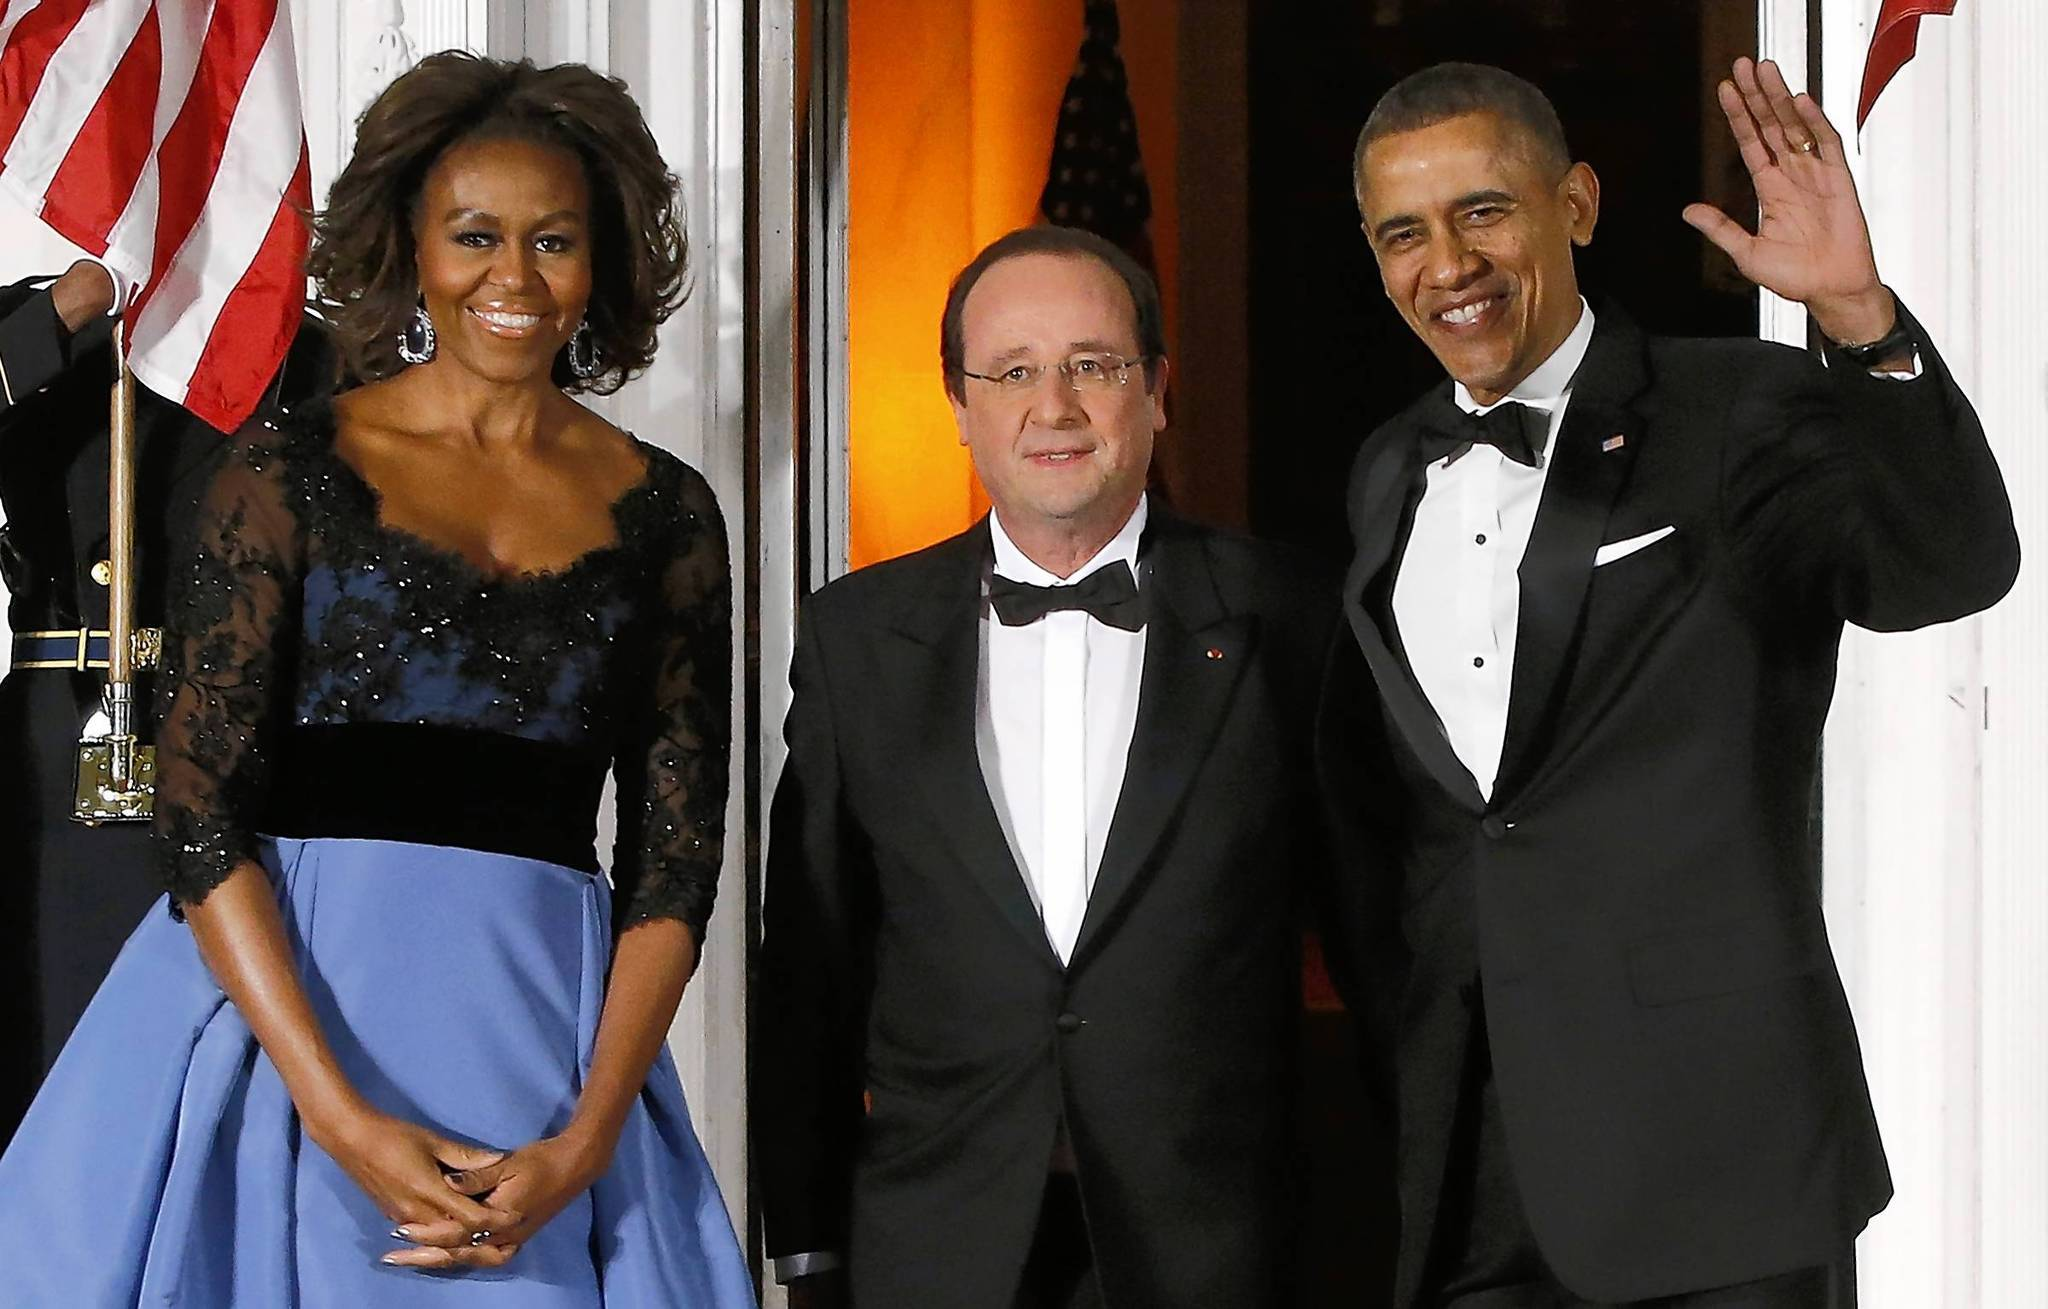 President Barack Obama and first lady Michelle Obama greet French President Francois Hollande as he arrives for a state dinner at the White House on Tuesday night.